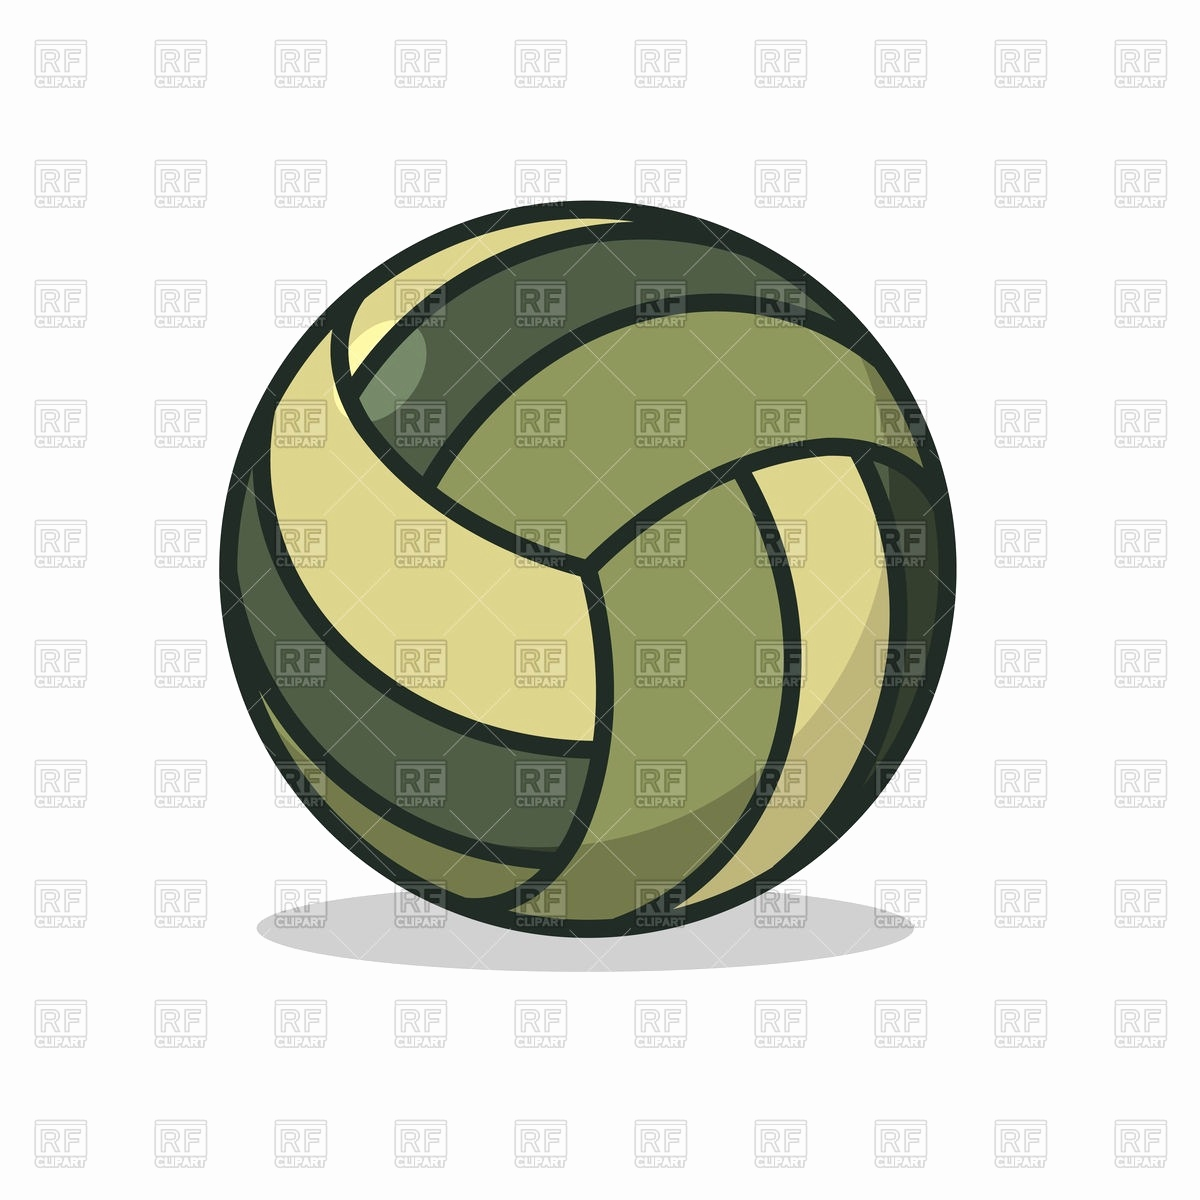 Www Bilder De Kostenlos Elegant Volleyball Template New Volleyball Ball Seamless Pattern Royalty